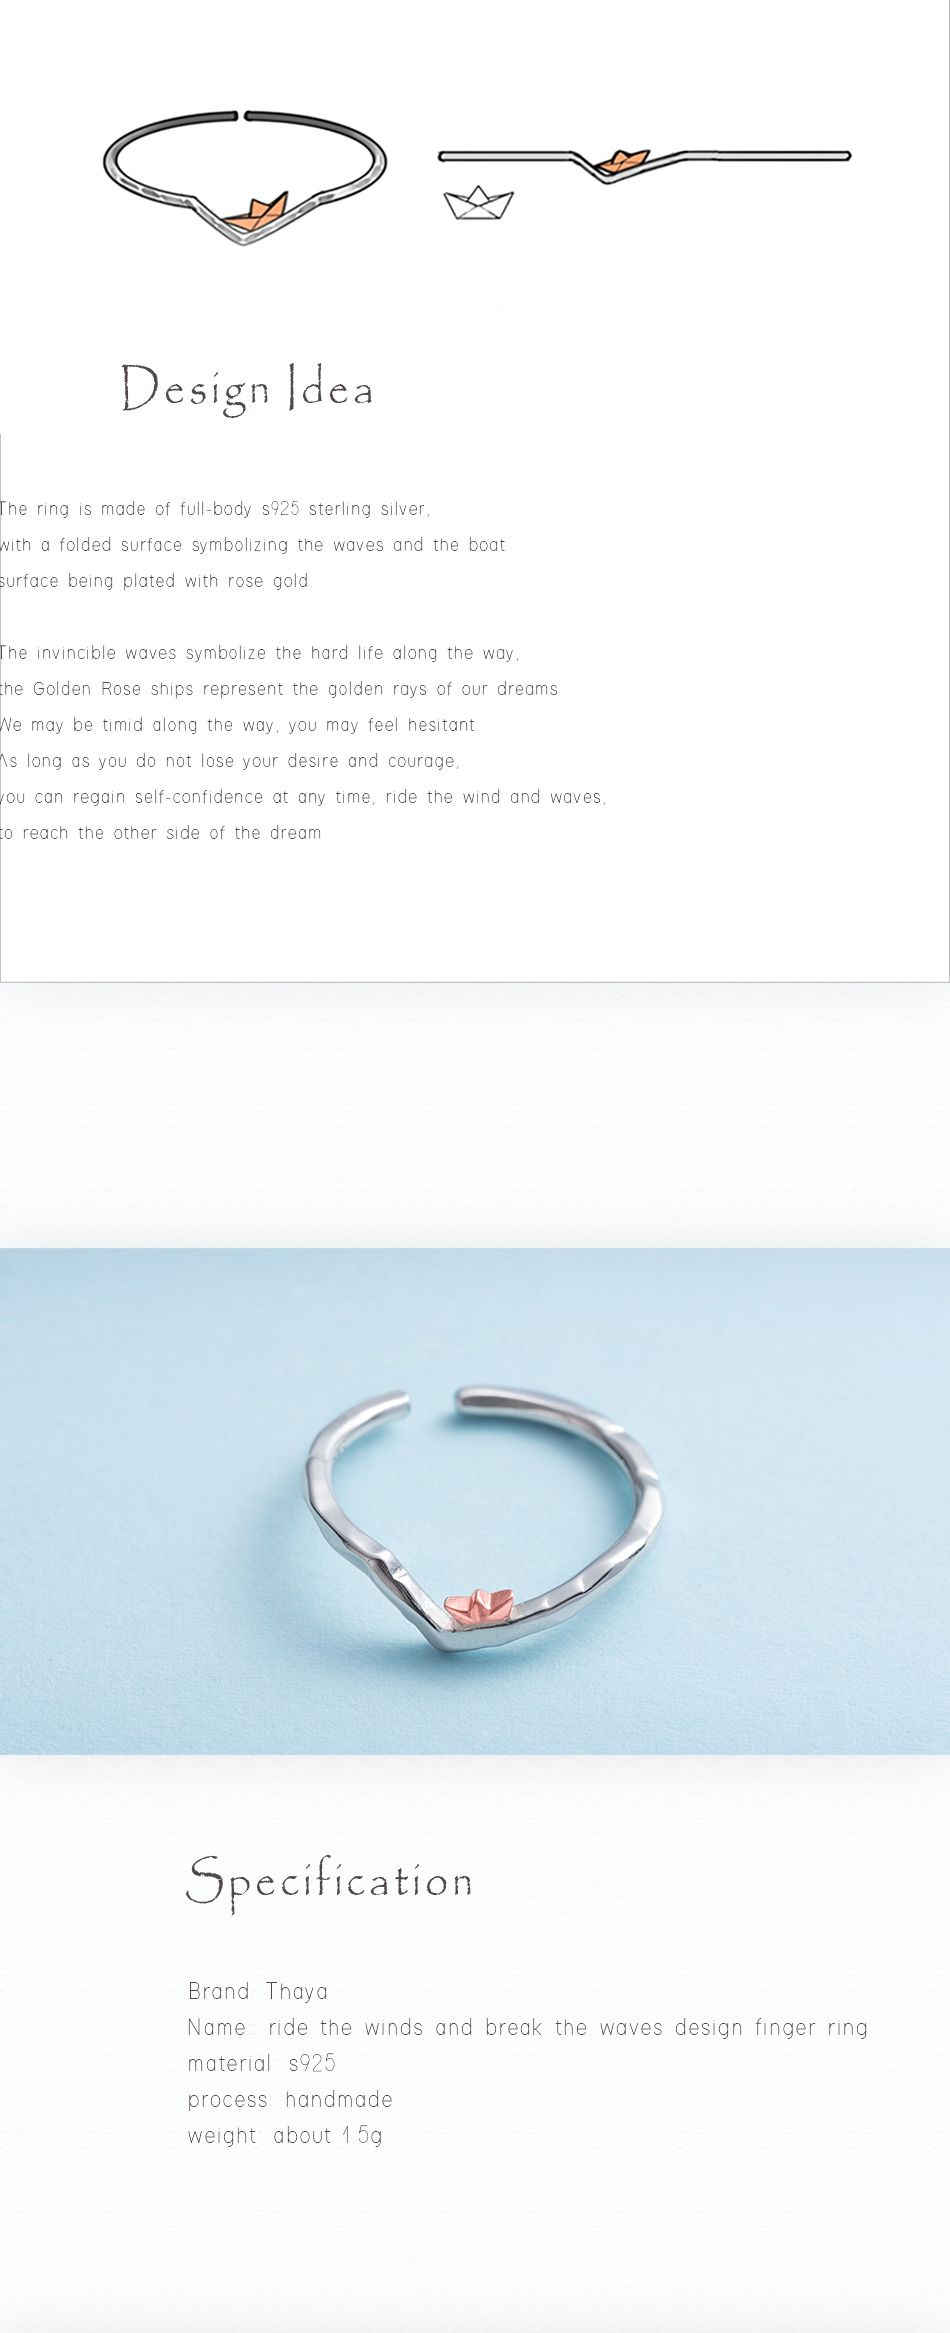 Thaya Ride The Winds and Break The Waves Design Finger Ring Rose Gold s925 Silver Handmade jewelery